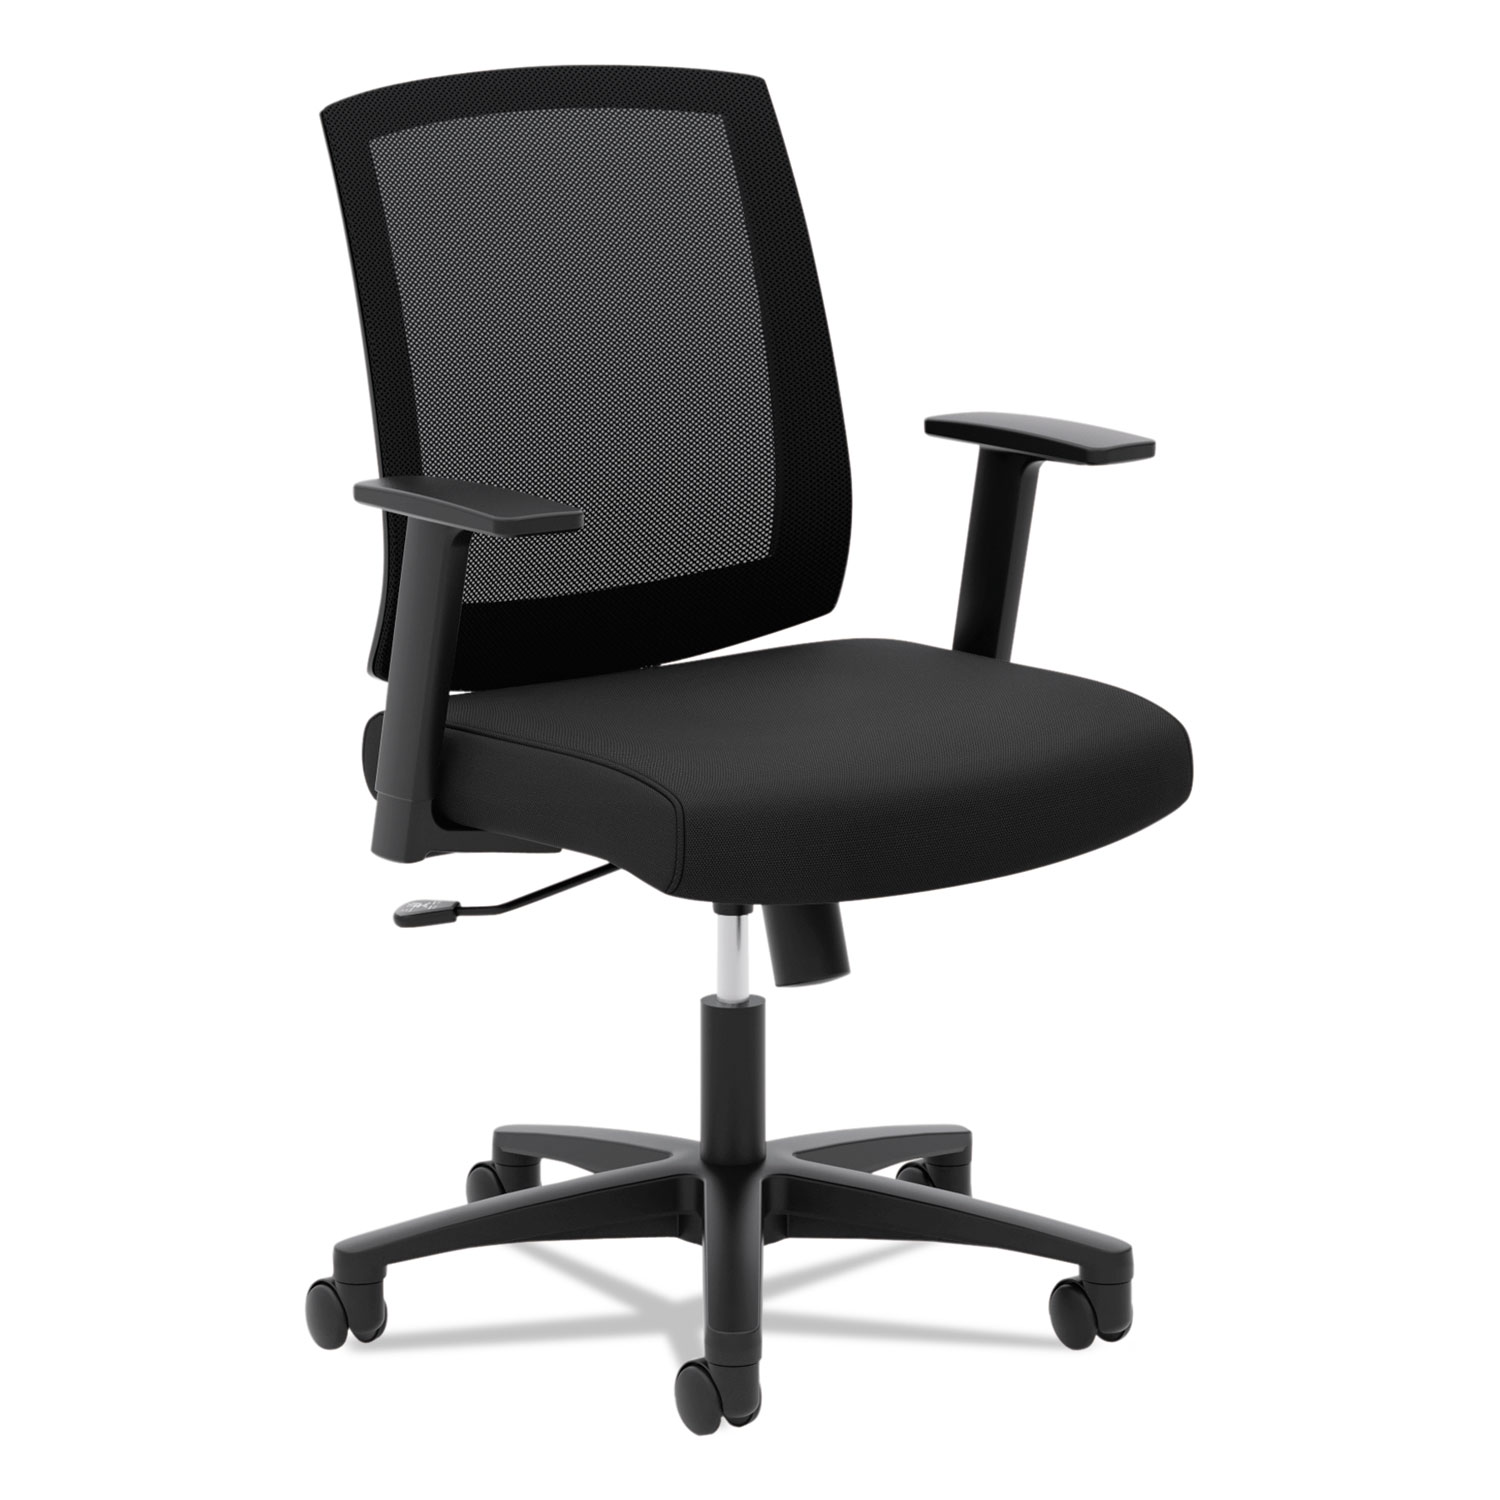 vl511 mesh mid back task chair with arms by hon bsxvl511lh10